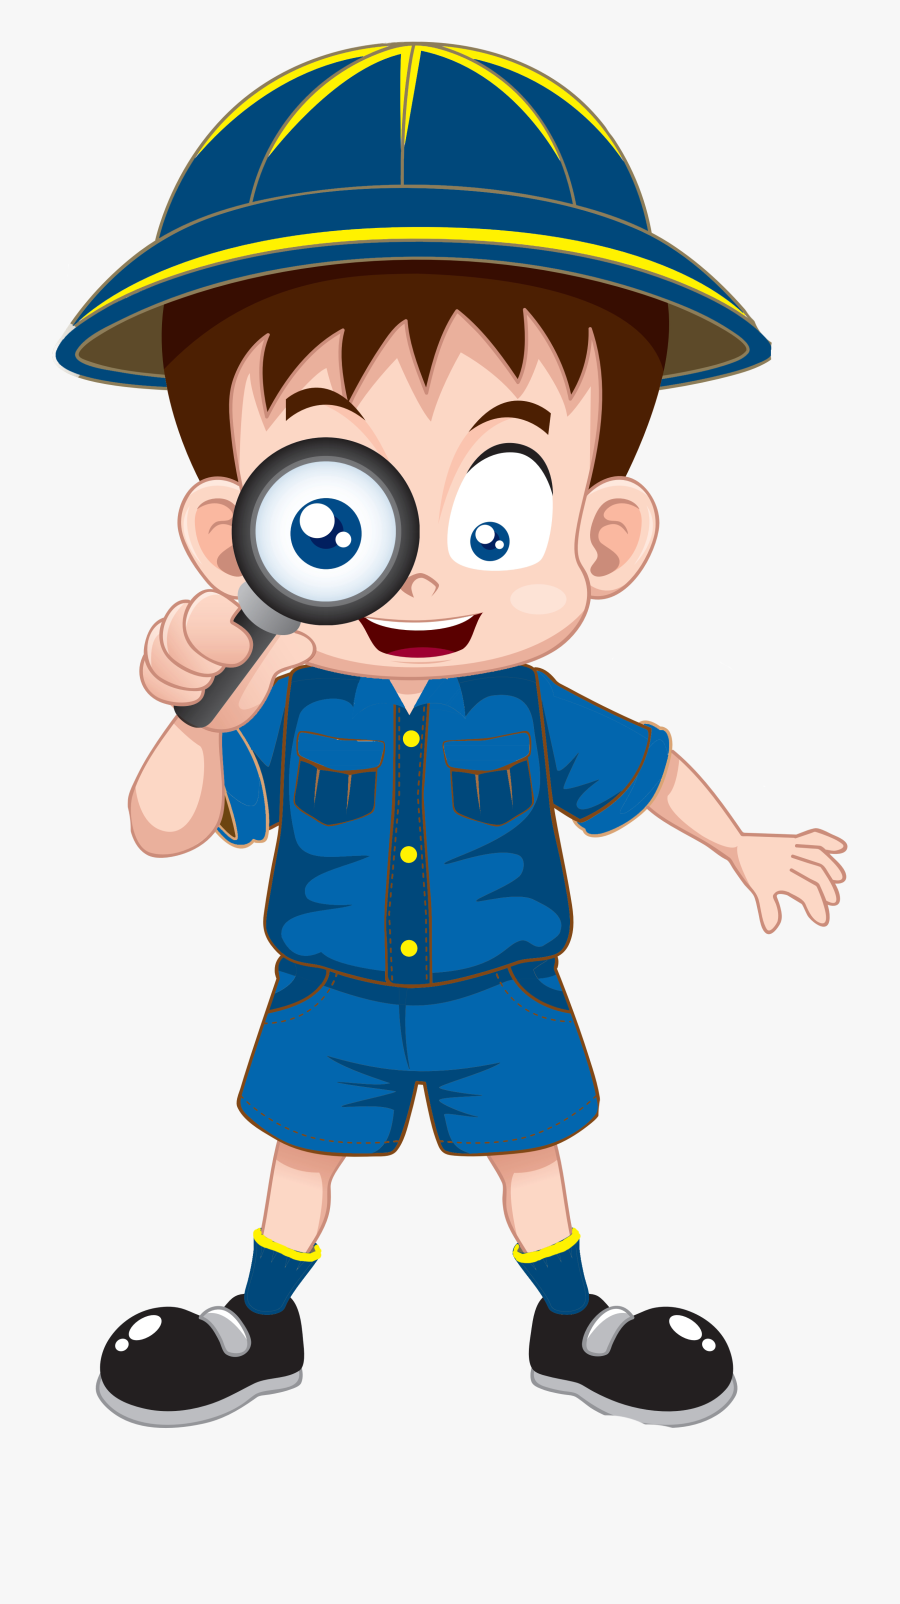 Scouting For Boys Boy Scouts Of America Cub Scout Camping - Boy Scout Cartoon Transparent, Transparent Clipart